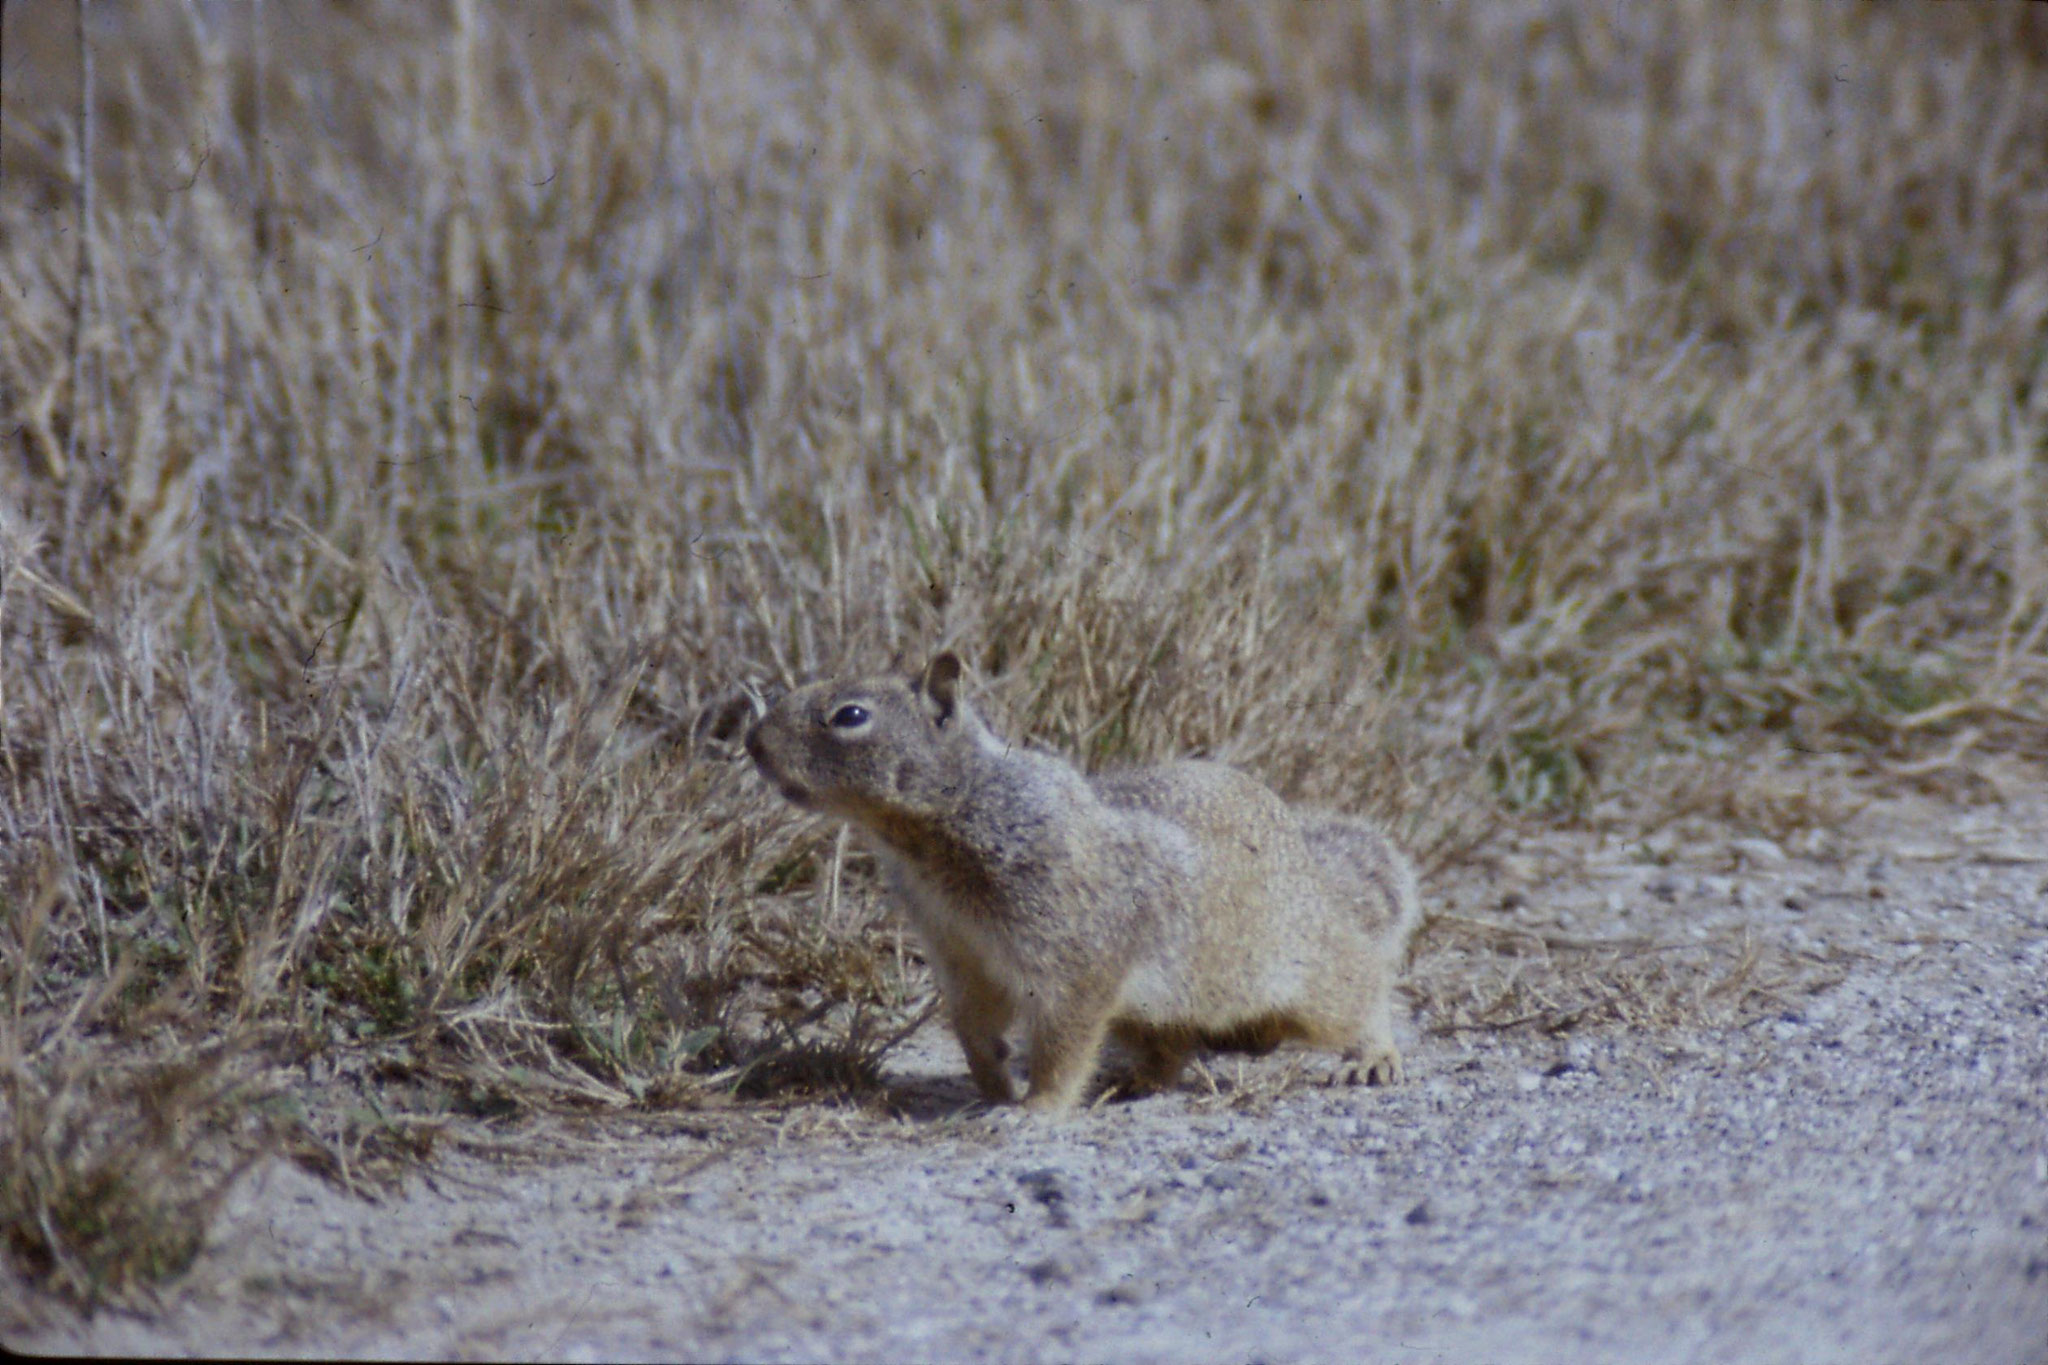 15/2/1991: 8: Sacramento NWR, Beechy Ground Squirrel